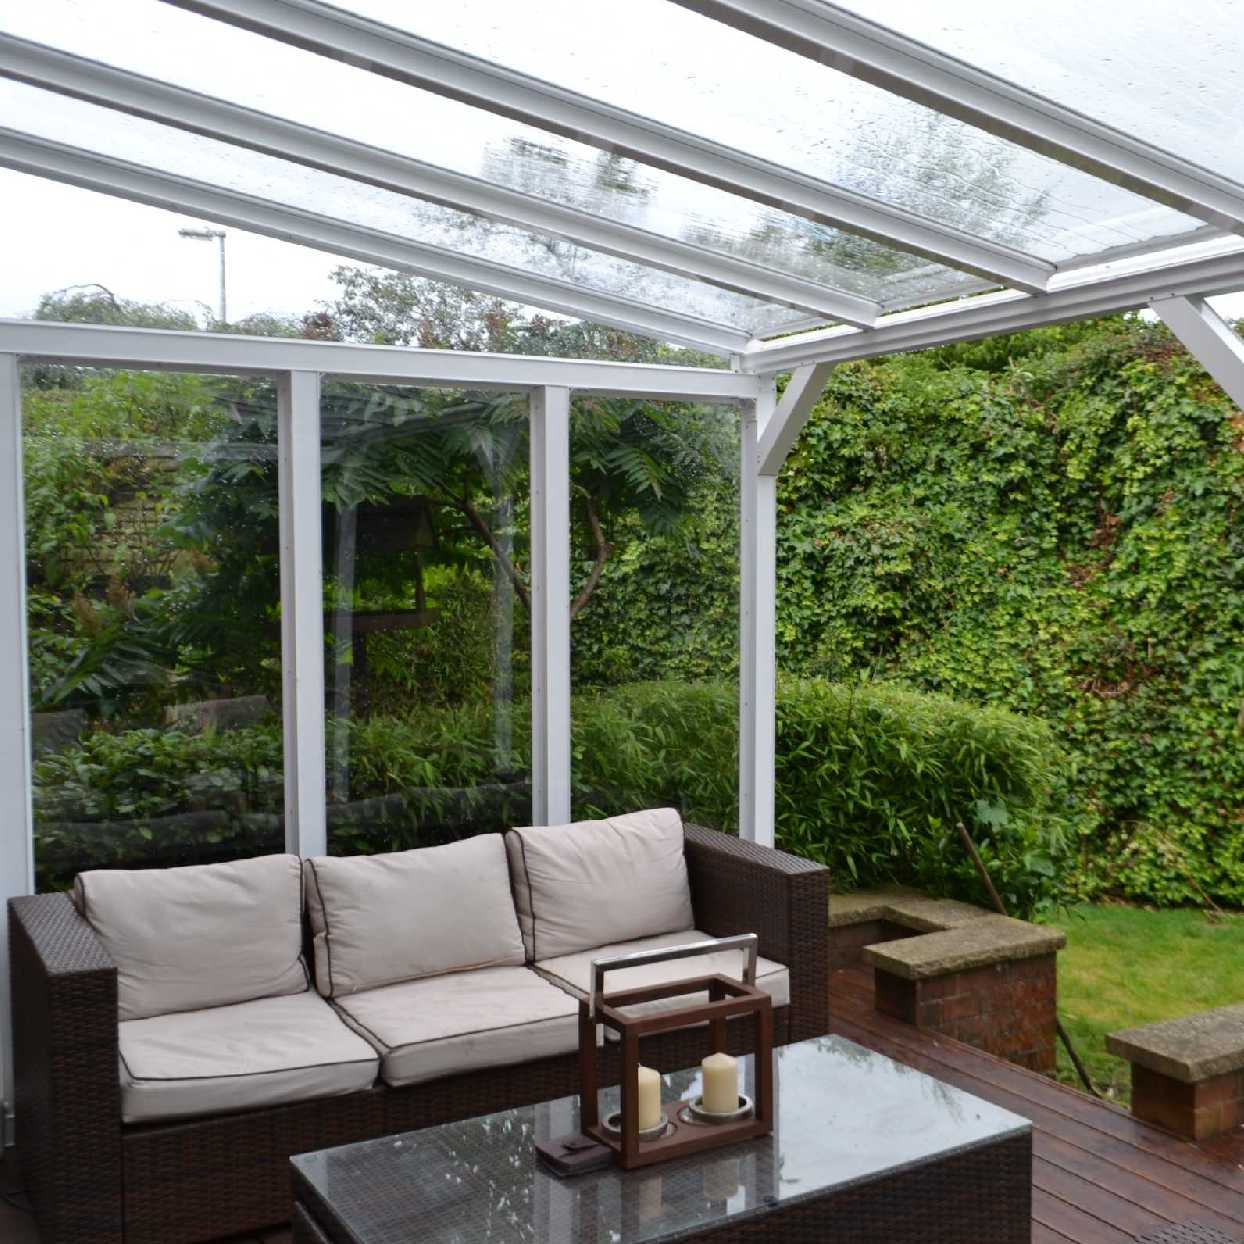 Omega Smart White Lean-To Canopy with 6mm Glass Clear Plate Polycarbonate Glazing - 2.8m (W) x 3.0m (P), (2) Supporting Posts